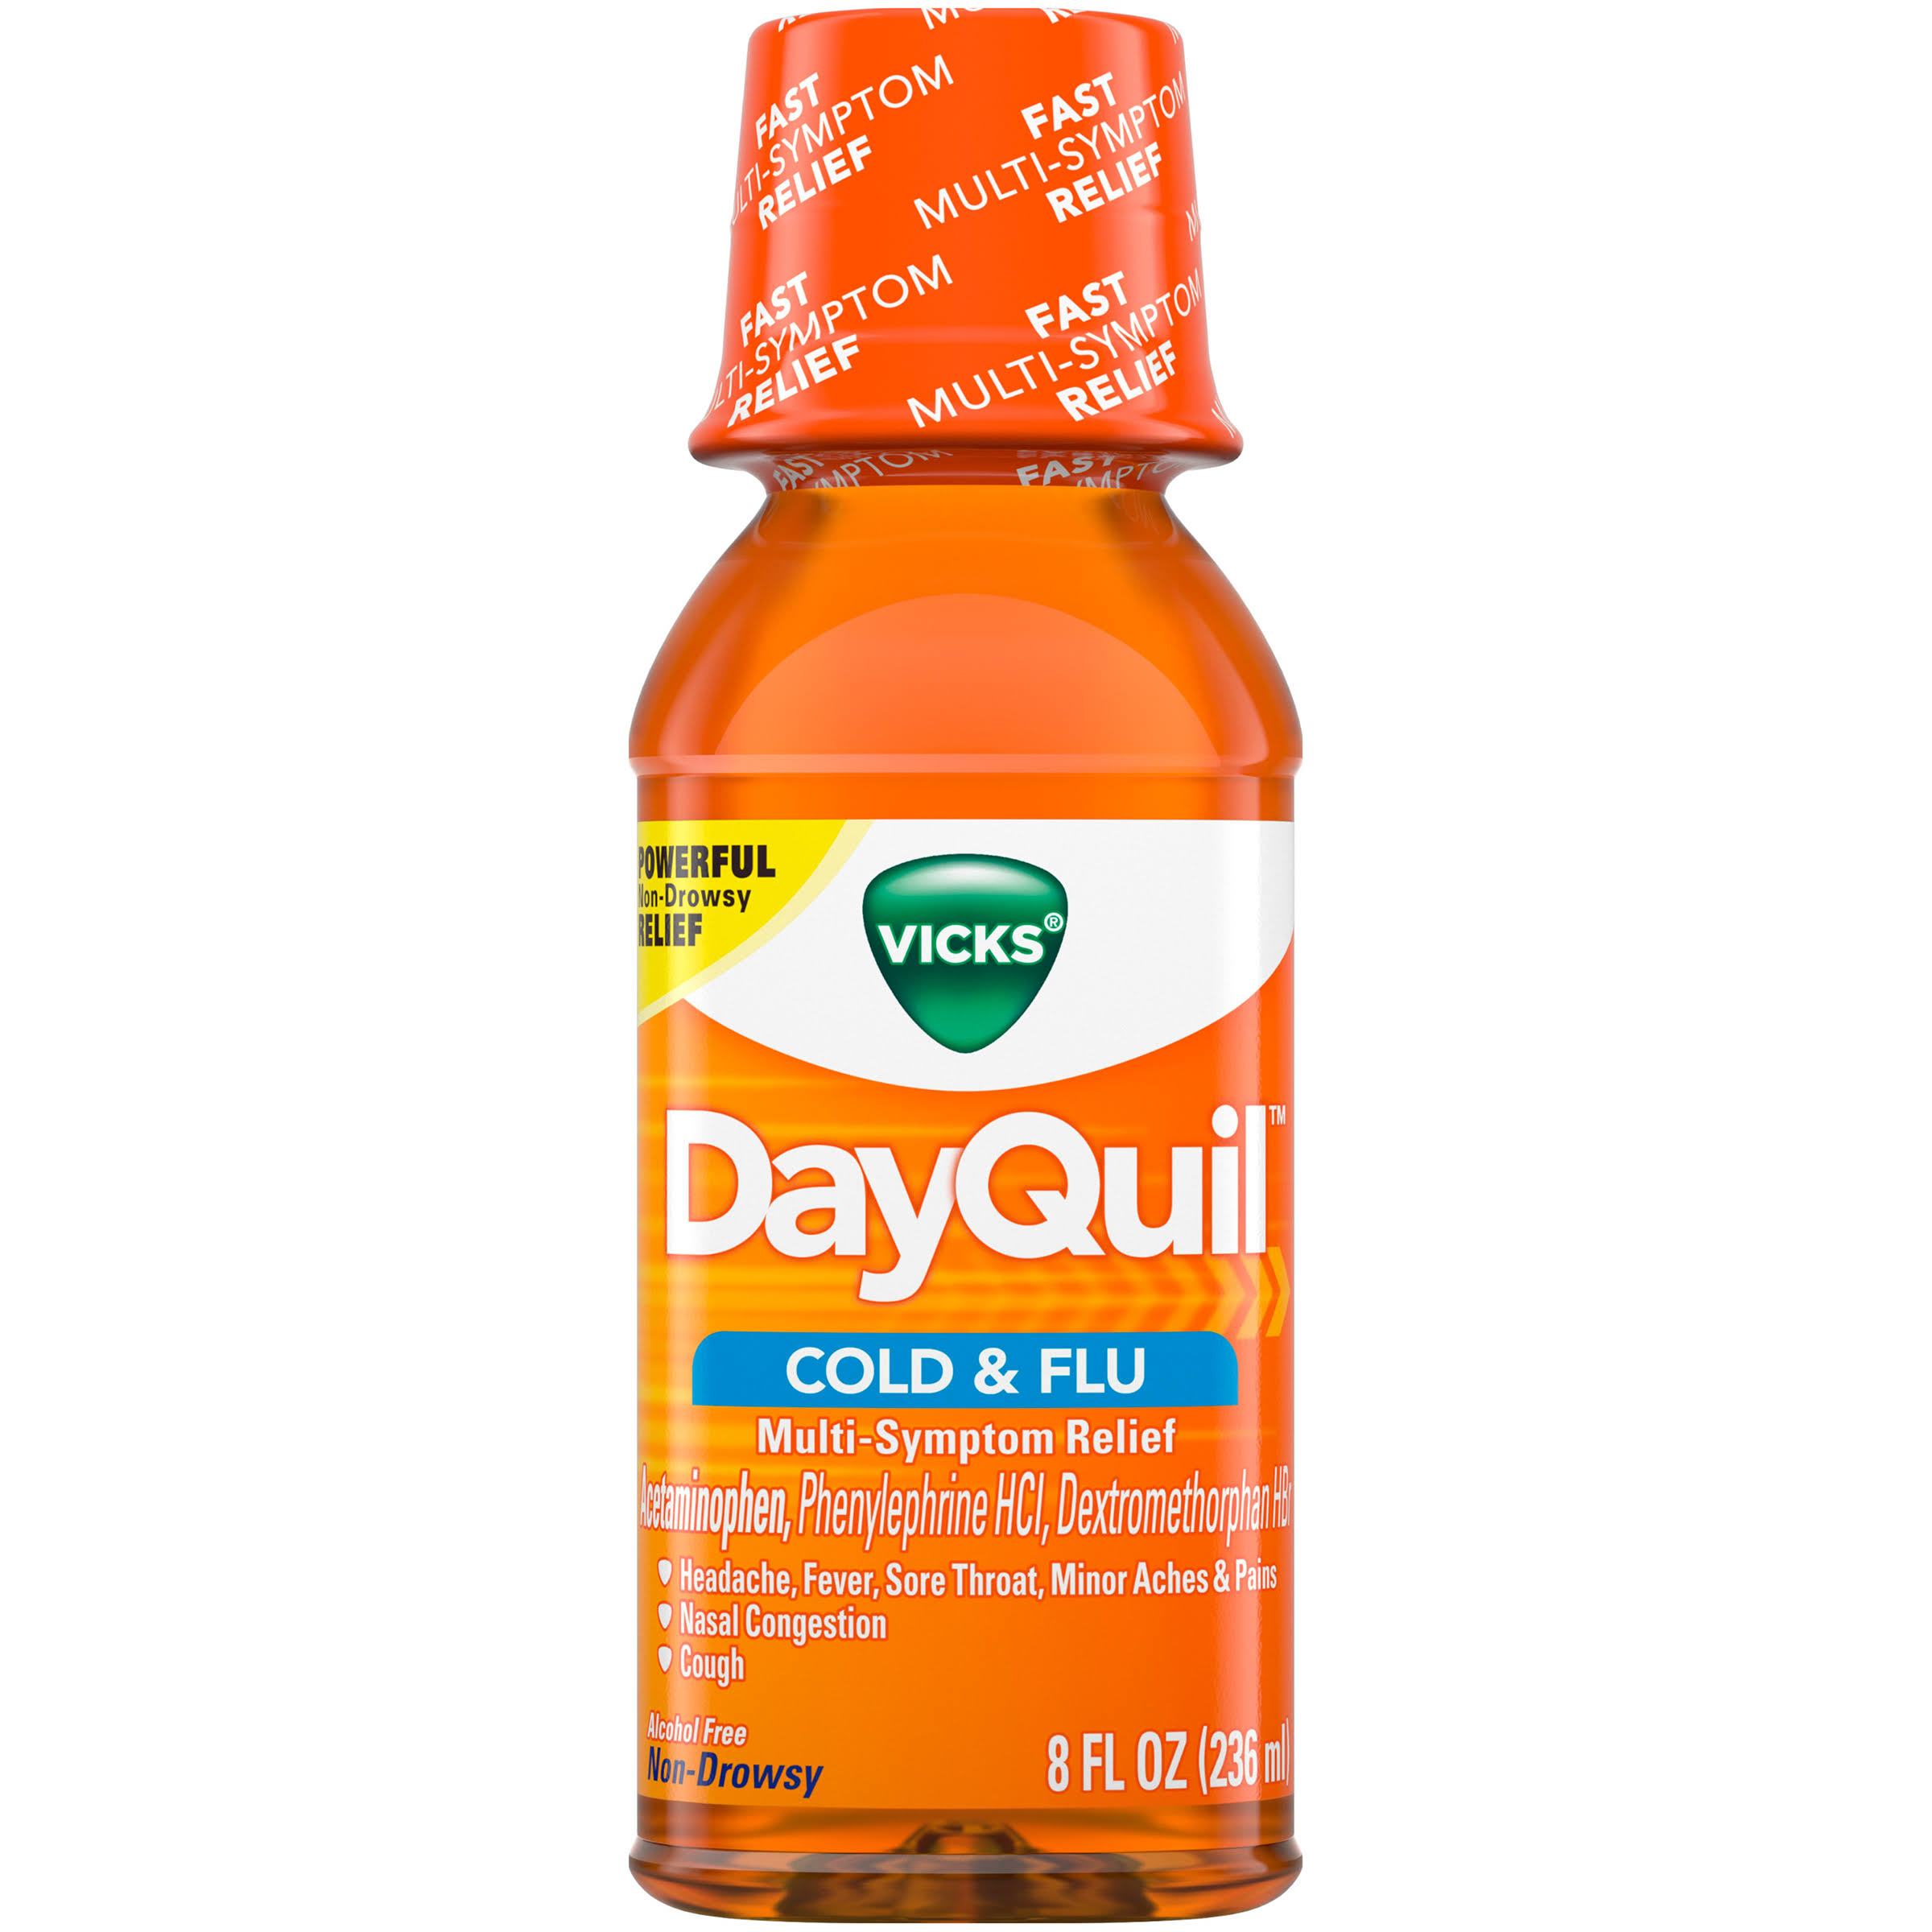 Vicks DayQuil Cold and Flu Relief Original Flavor Liquid